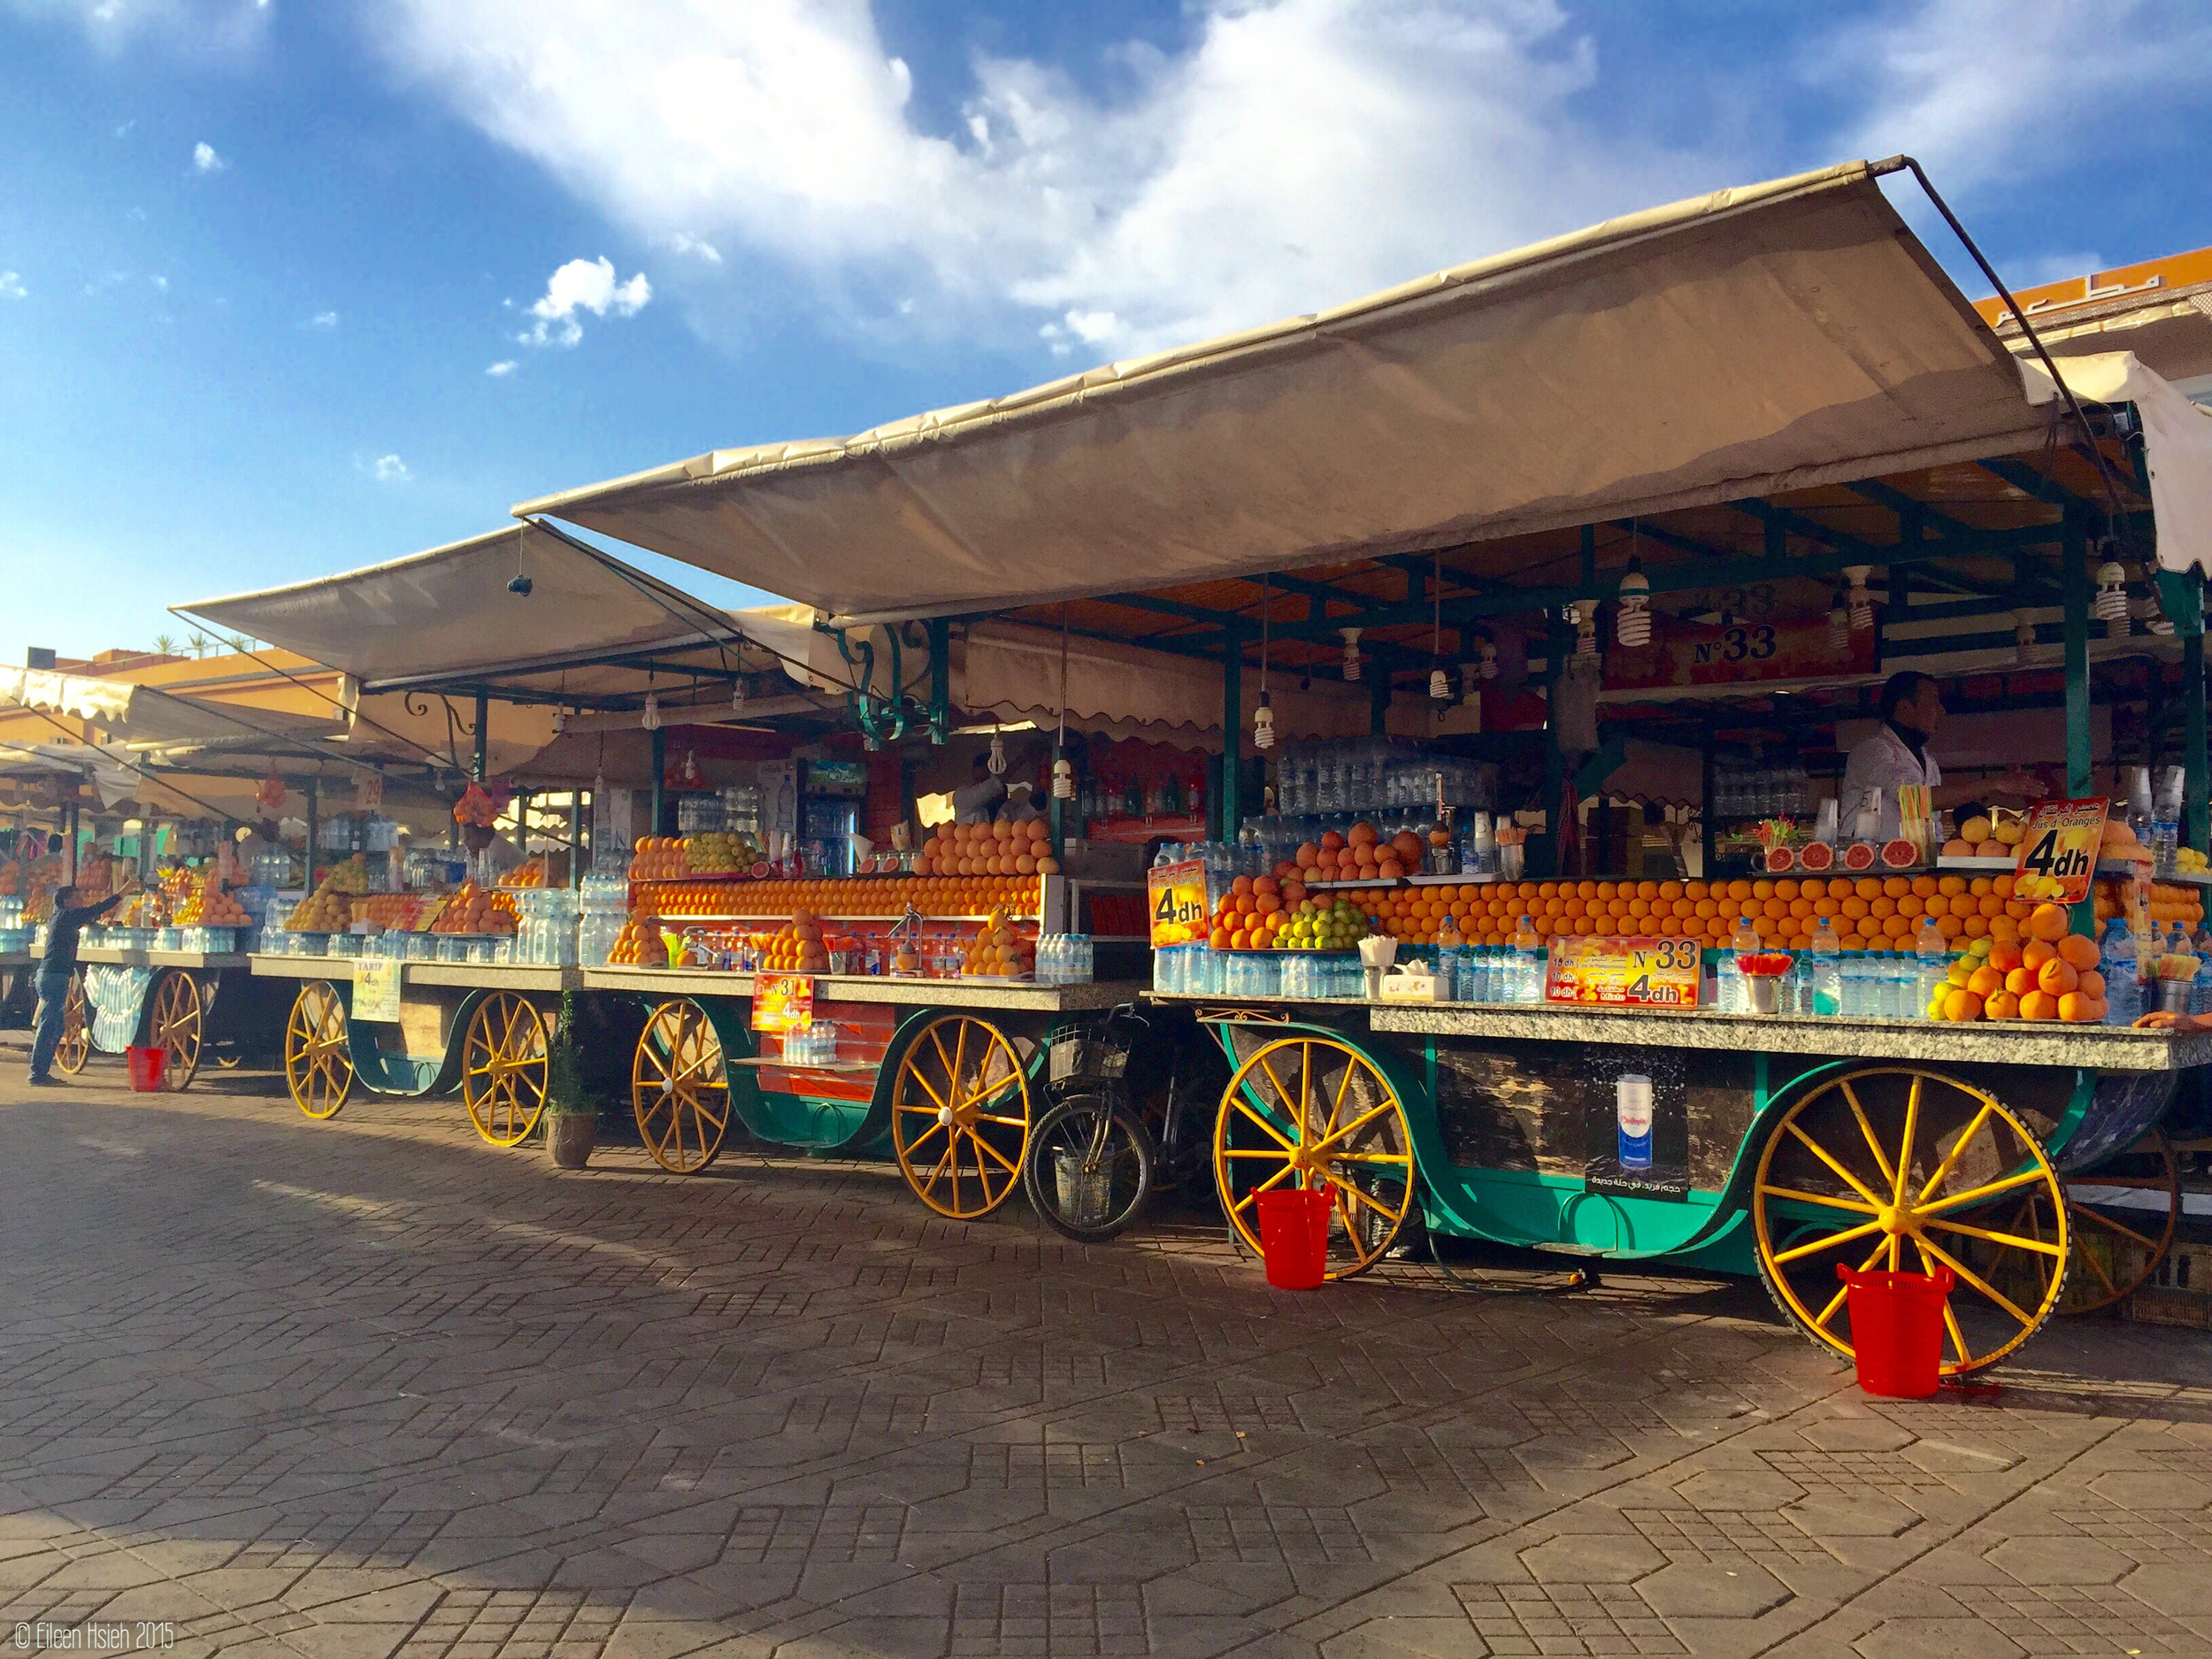 Dozens of juice stalls compete for business in Jemaa el Fna. The stalls are numbered for easy identification. Jemaa el Fna 大廣場上有十幾家現搾新鮮果汁的攤子,每家都有號碼標示,方便顧客再次光臨。